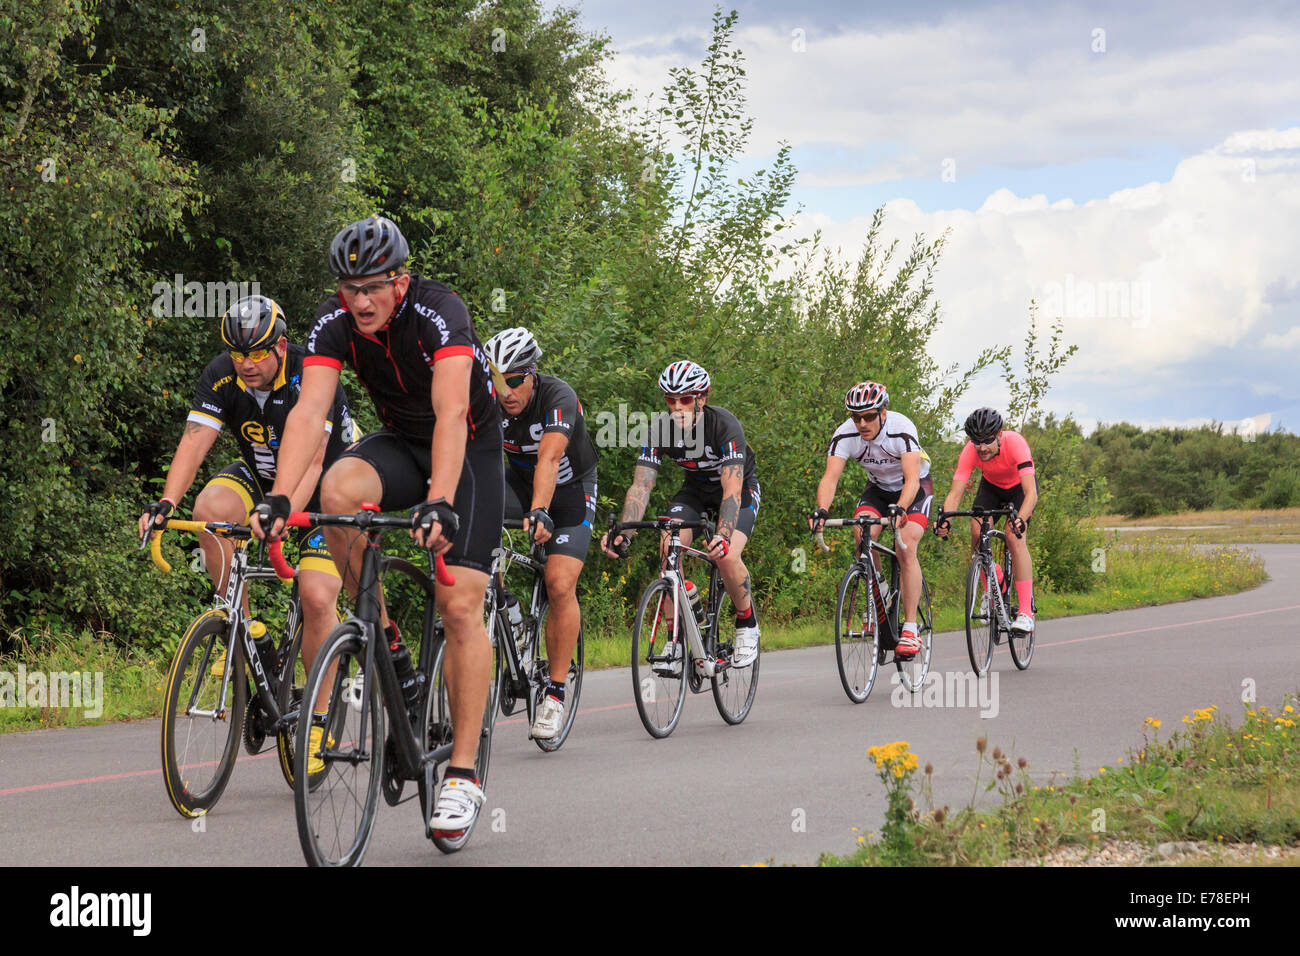 Men Cycle Racing In A Bike Race Organised By British Cycling For